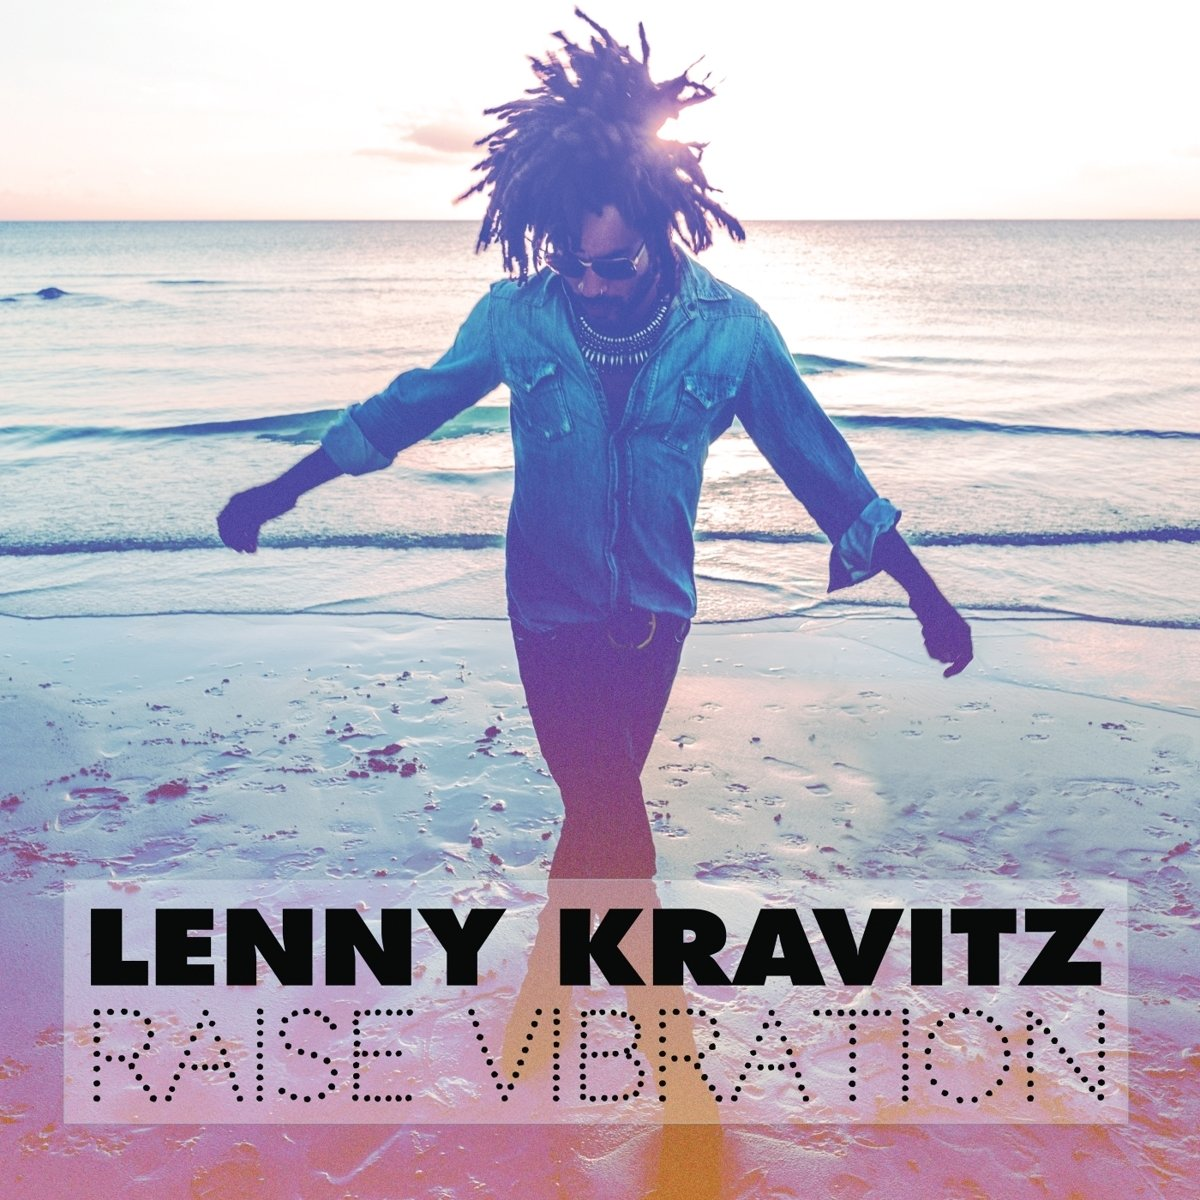 Vinilo : Lenny Kravitz - Raise Vibration (With CD, Boxed Set, With Book, Digital Download Card)